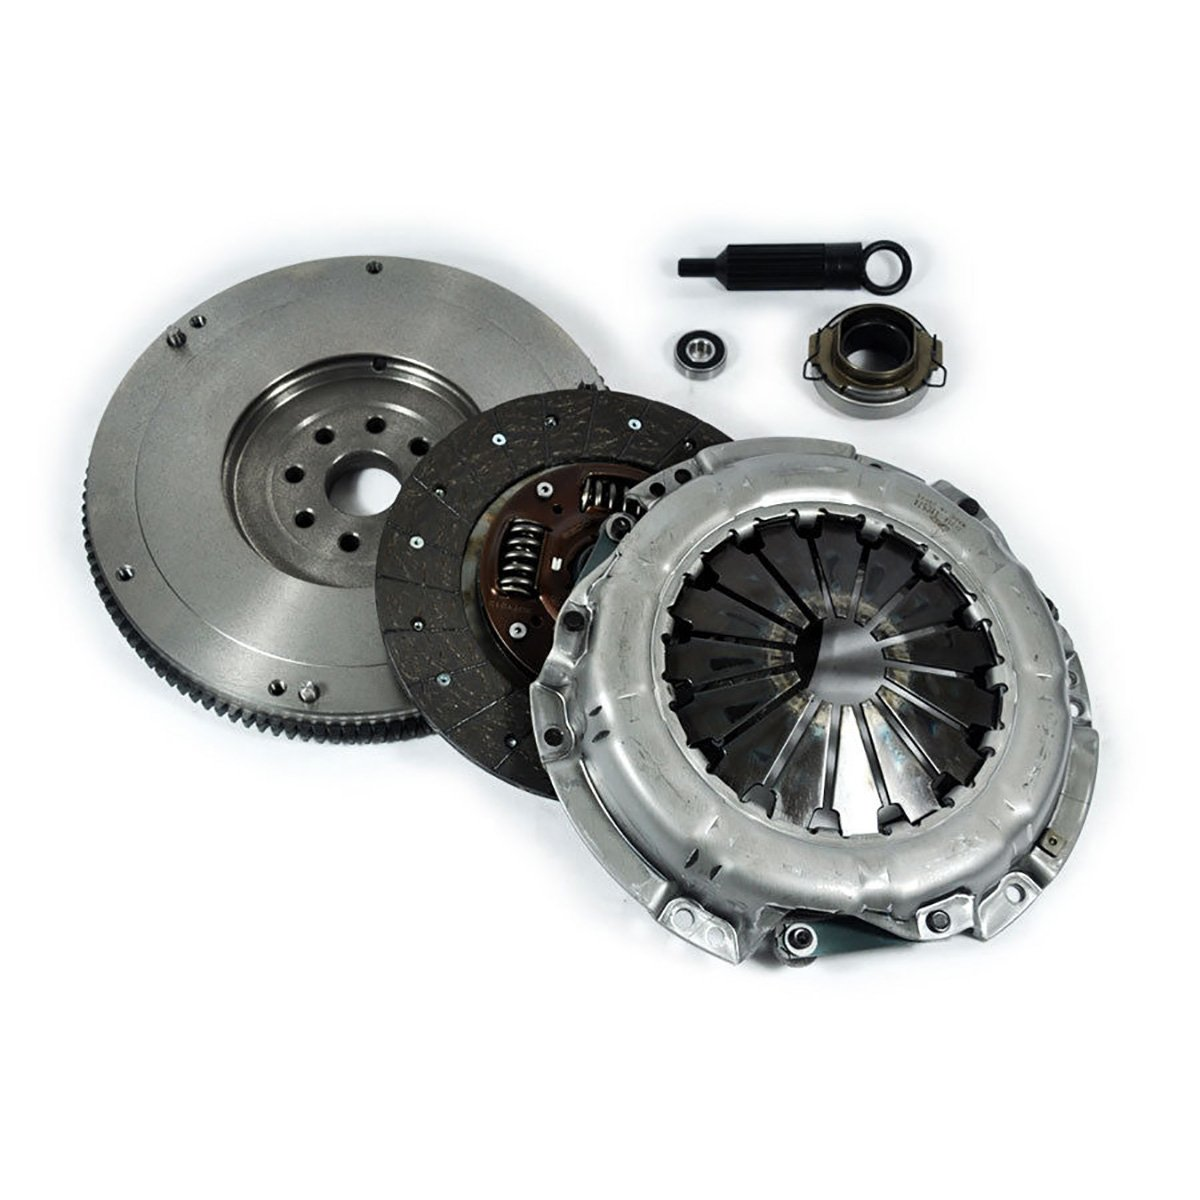 EFT RACING HD CLUTCH KIT+FLYWHEEL 88-95 4RUNNER PICKUP 2WD 4WD T100 2WD 3.0L EFORTISSIMO